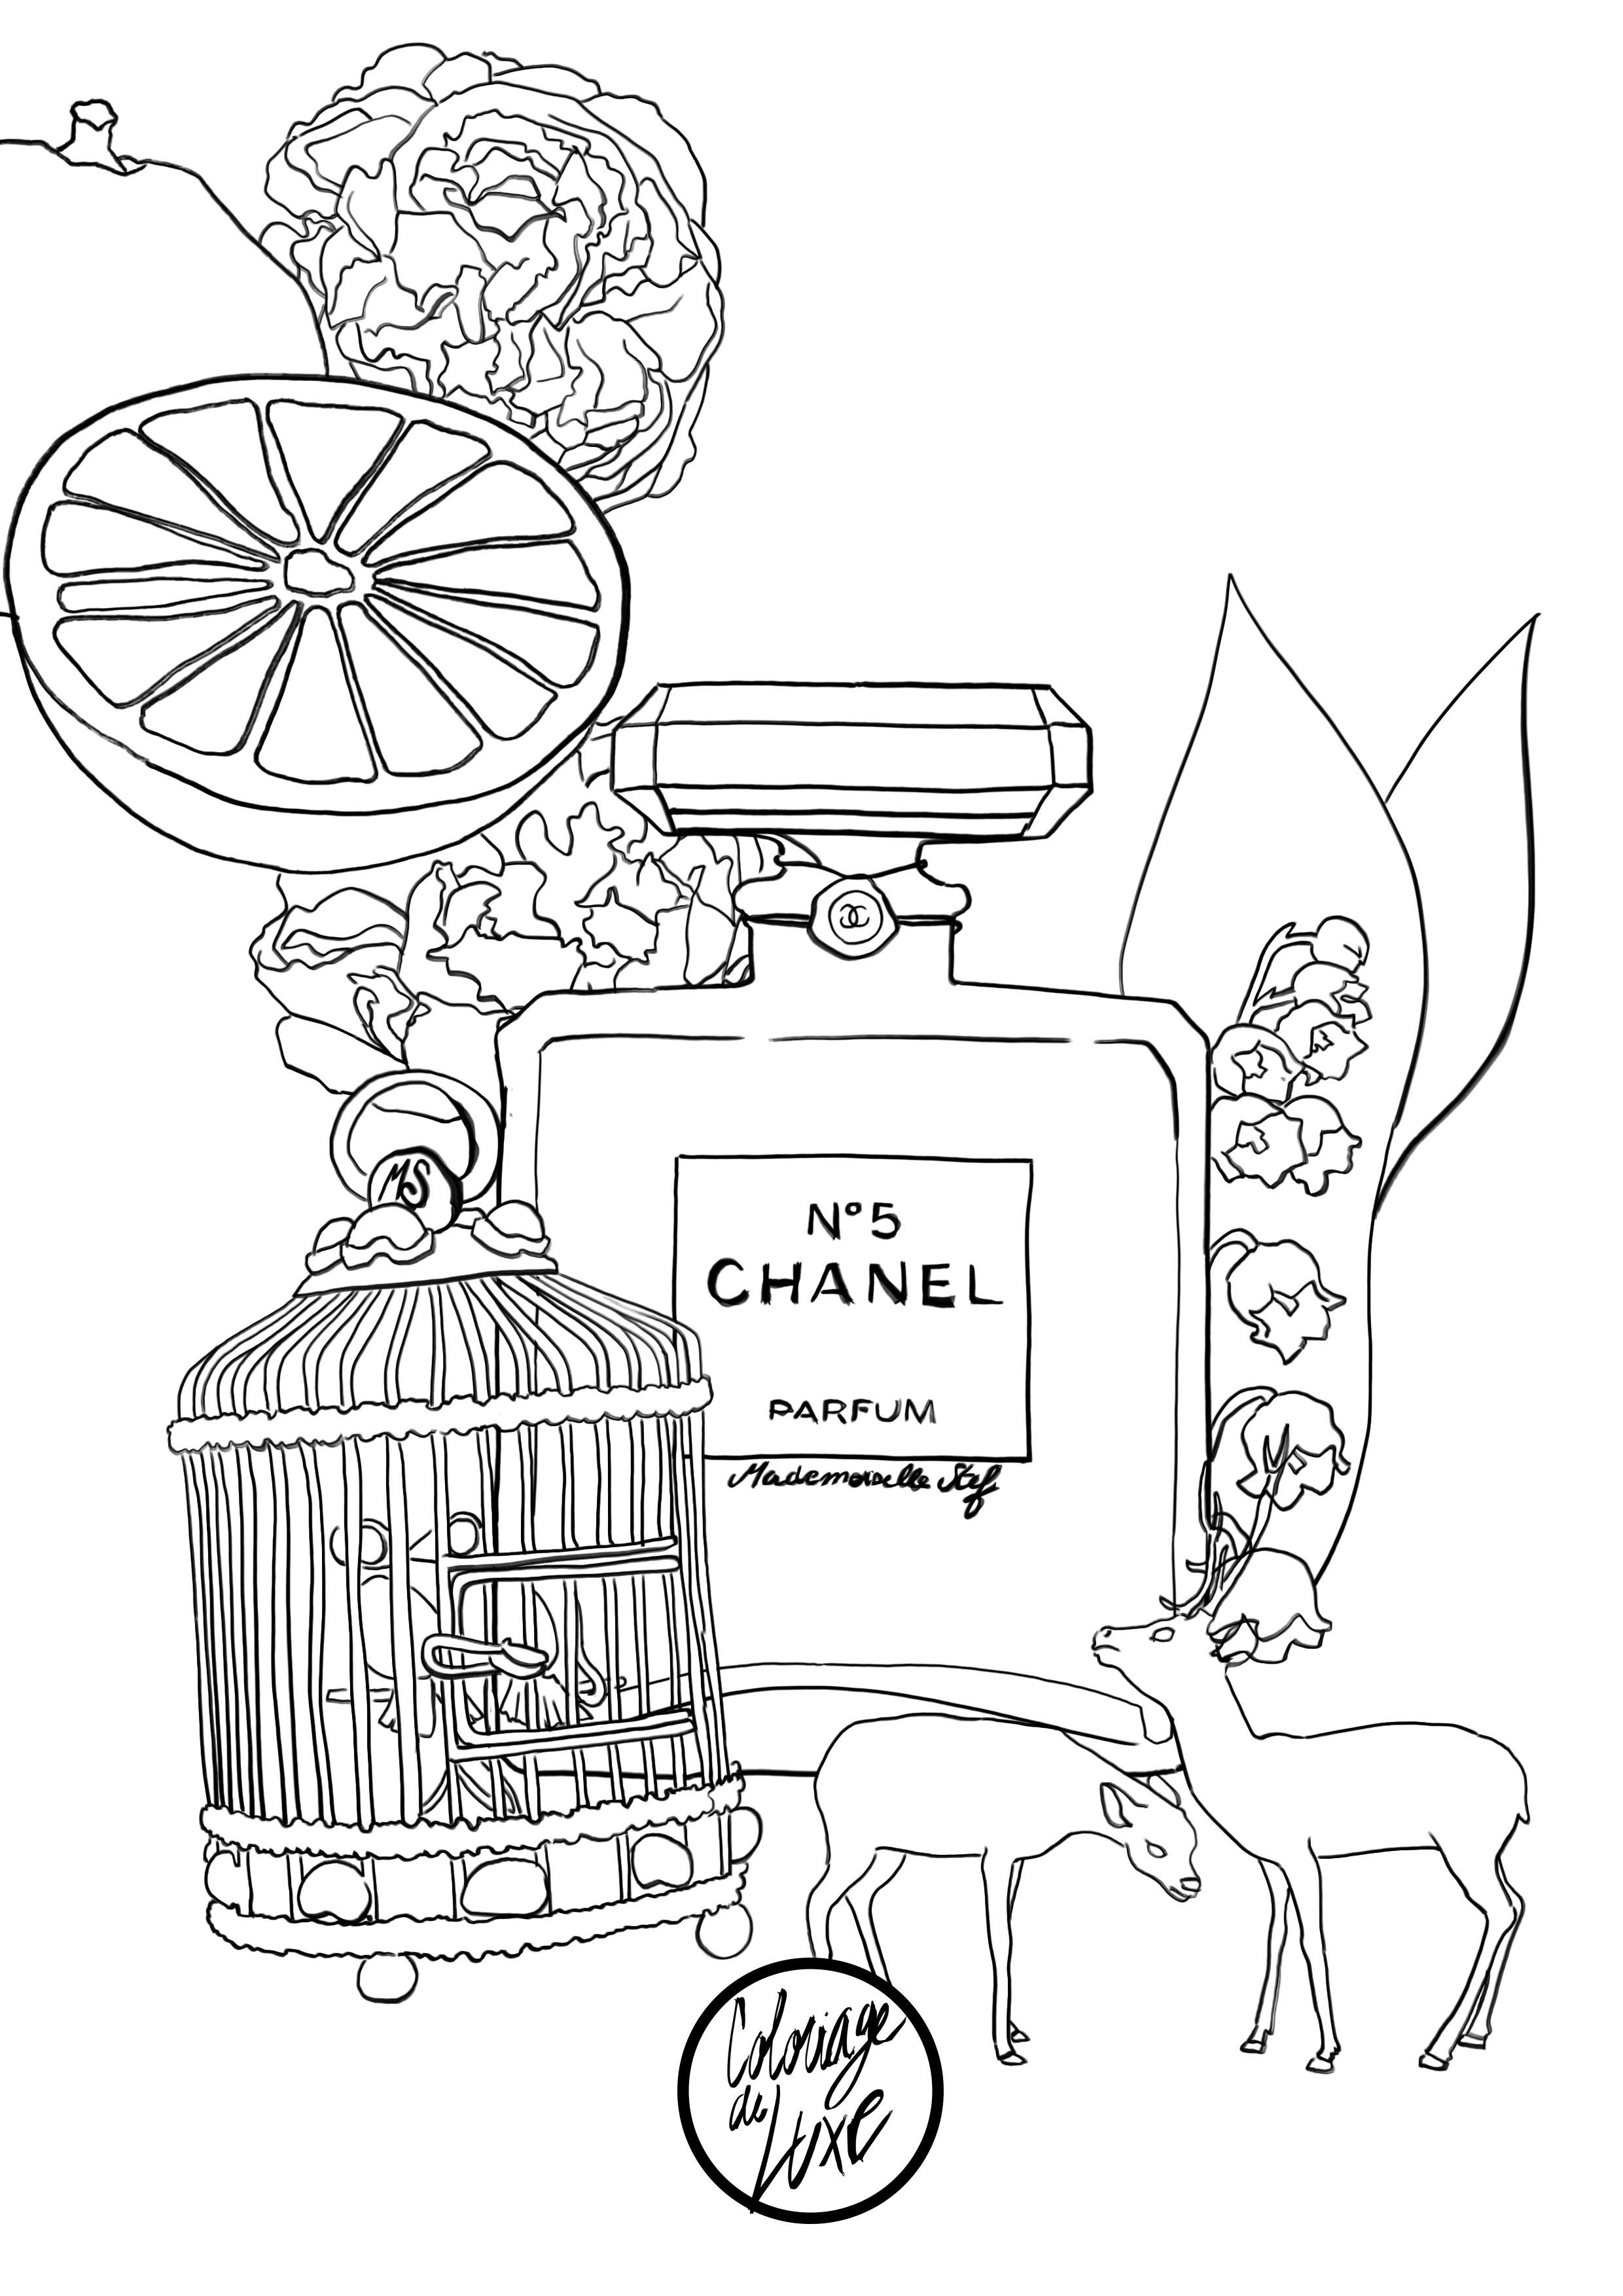 zen coloring perfume chanel 5 detailed coloring